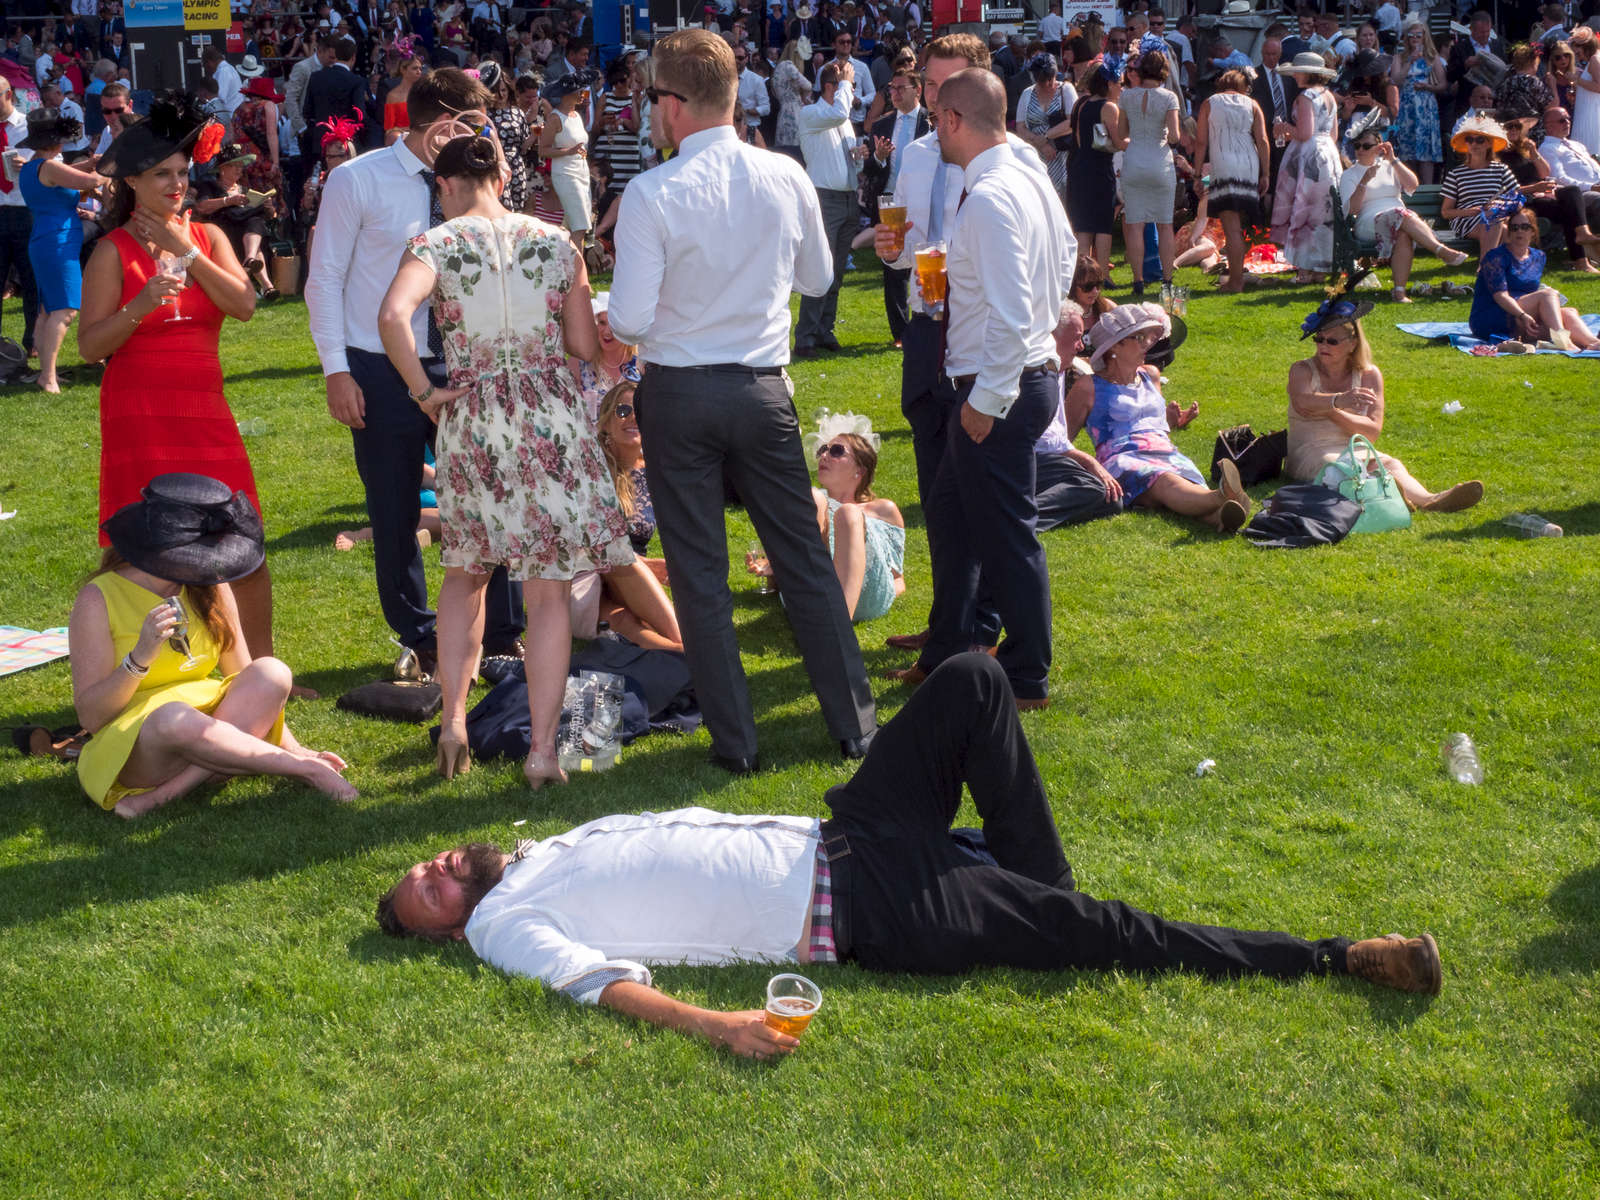 A man with his pint rests on the grass at Royal Ascot.One of Britain's most well-known racecourses, Ascot holds a special week of races in June each year called Royal Ascot, attended by The Queen. The week has become Britain's most popular race meeting, welcoming around 300,000 visitors over five days, all dressed up in their finest clothes and hats.